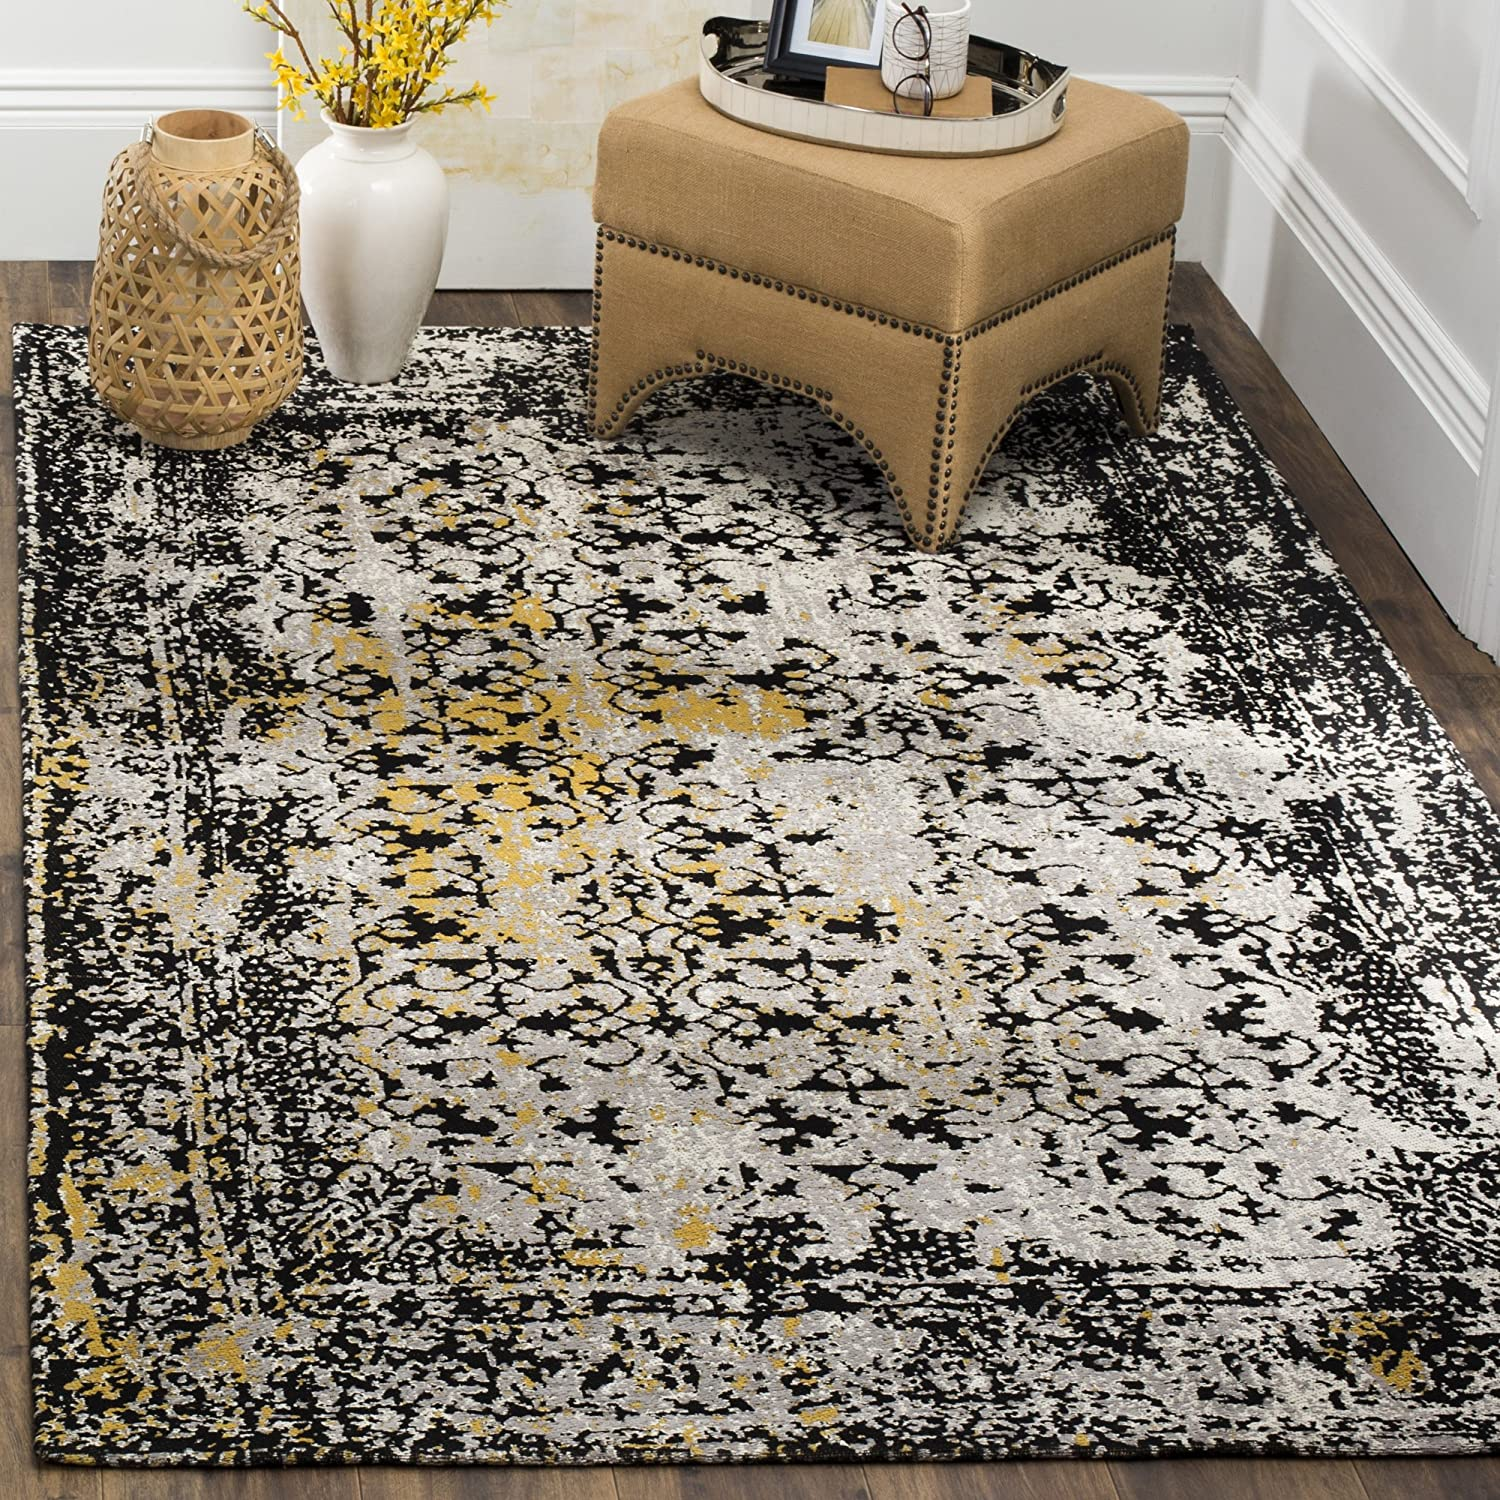 Safavieh Classic Vintage Collection Clv223a Distressed Area Rug 5 X 8 Black Silver Furniture Decor